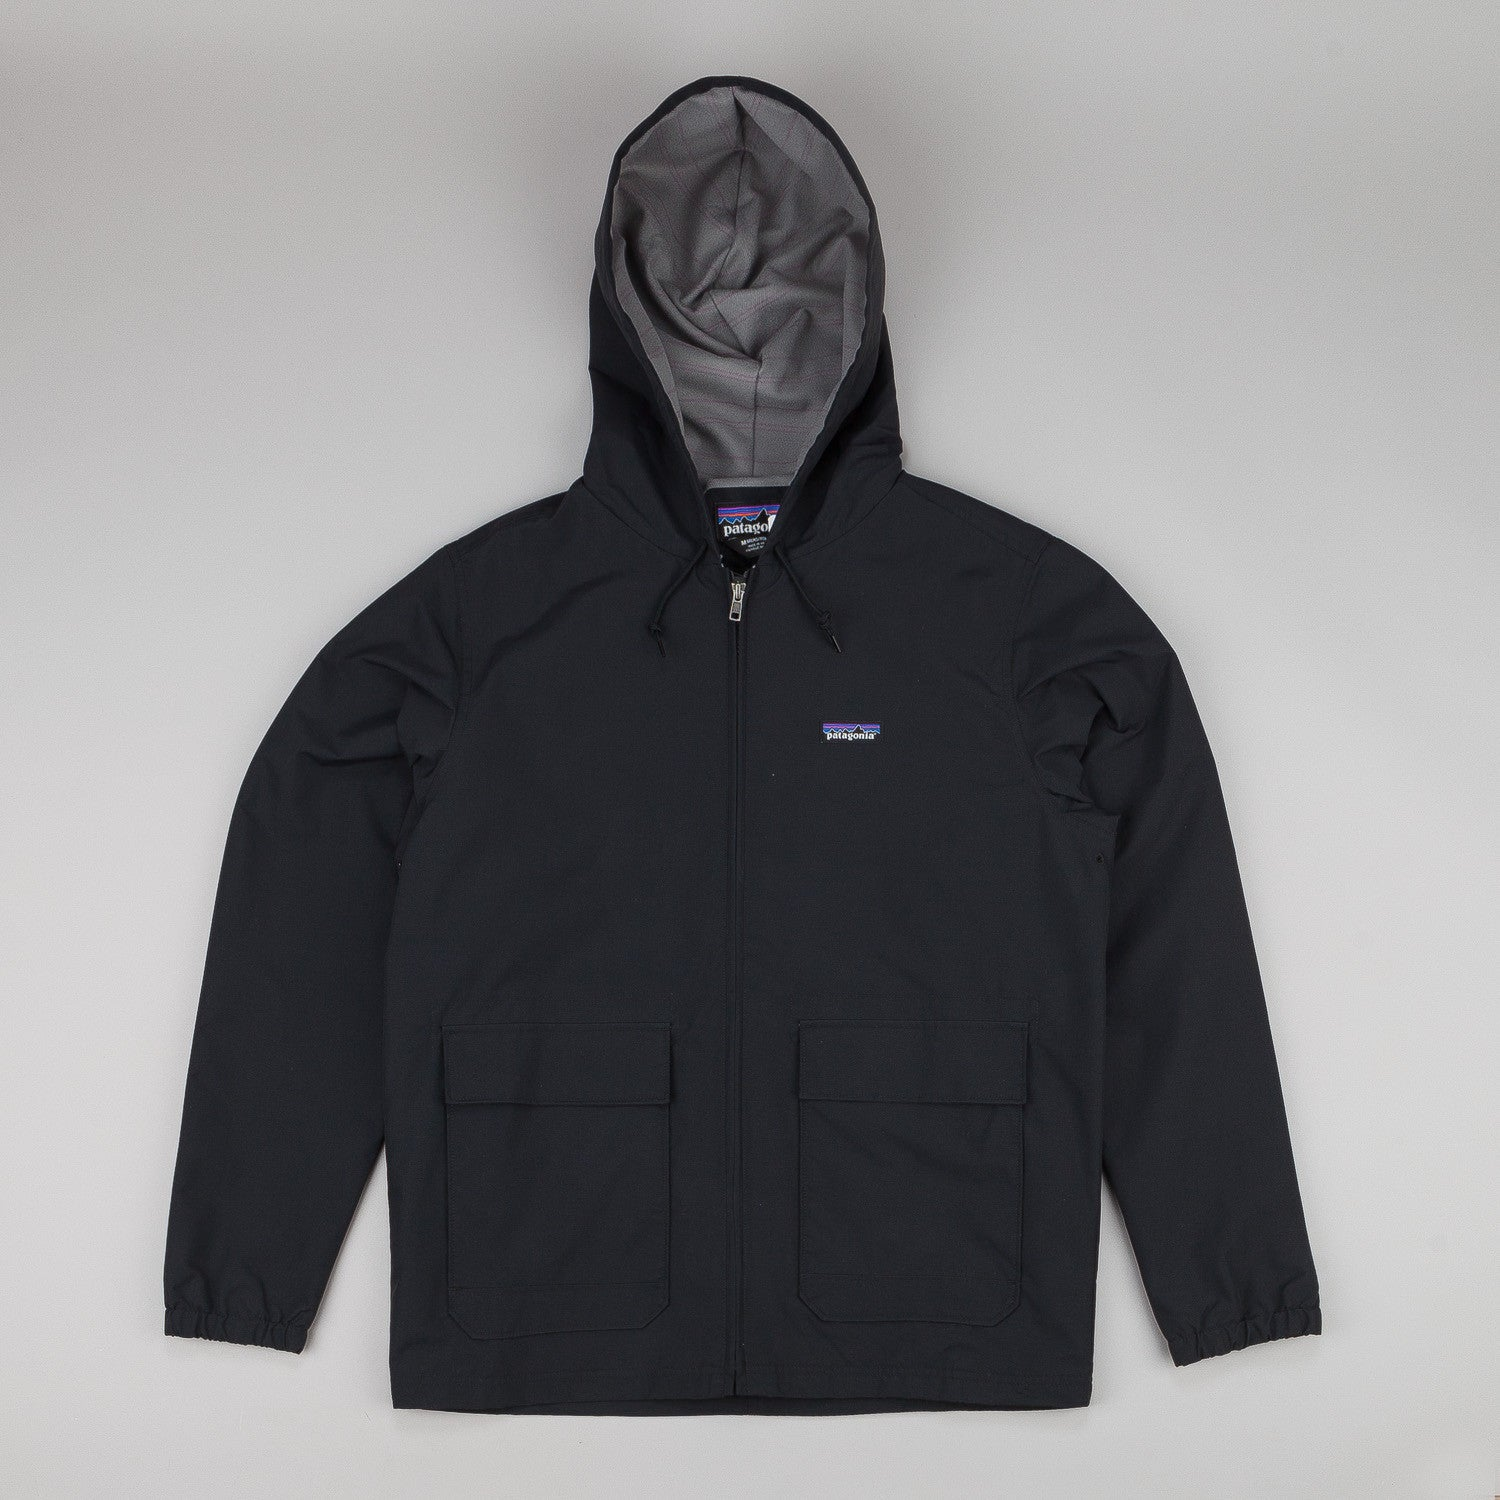 Patagonia Lined Baggies Jacket